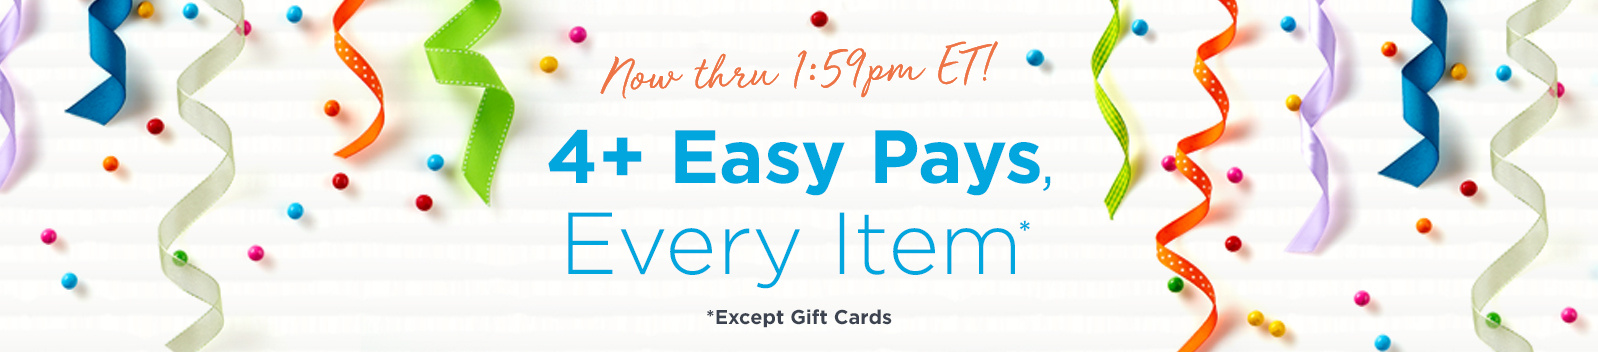 Now thru 1:59pm ET! 4+ Easy Pays, Every Item Except Gift Cards